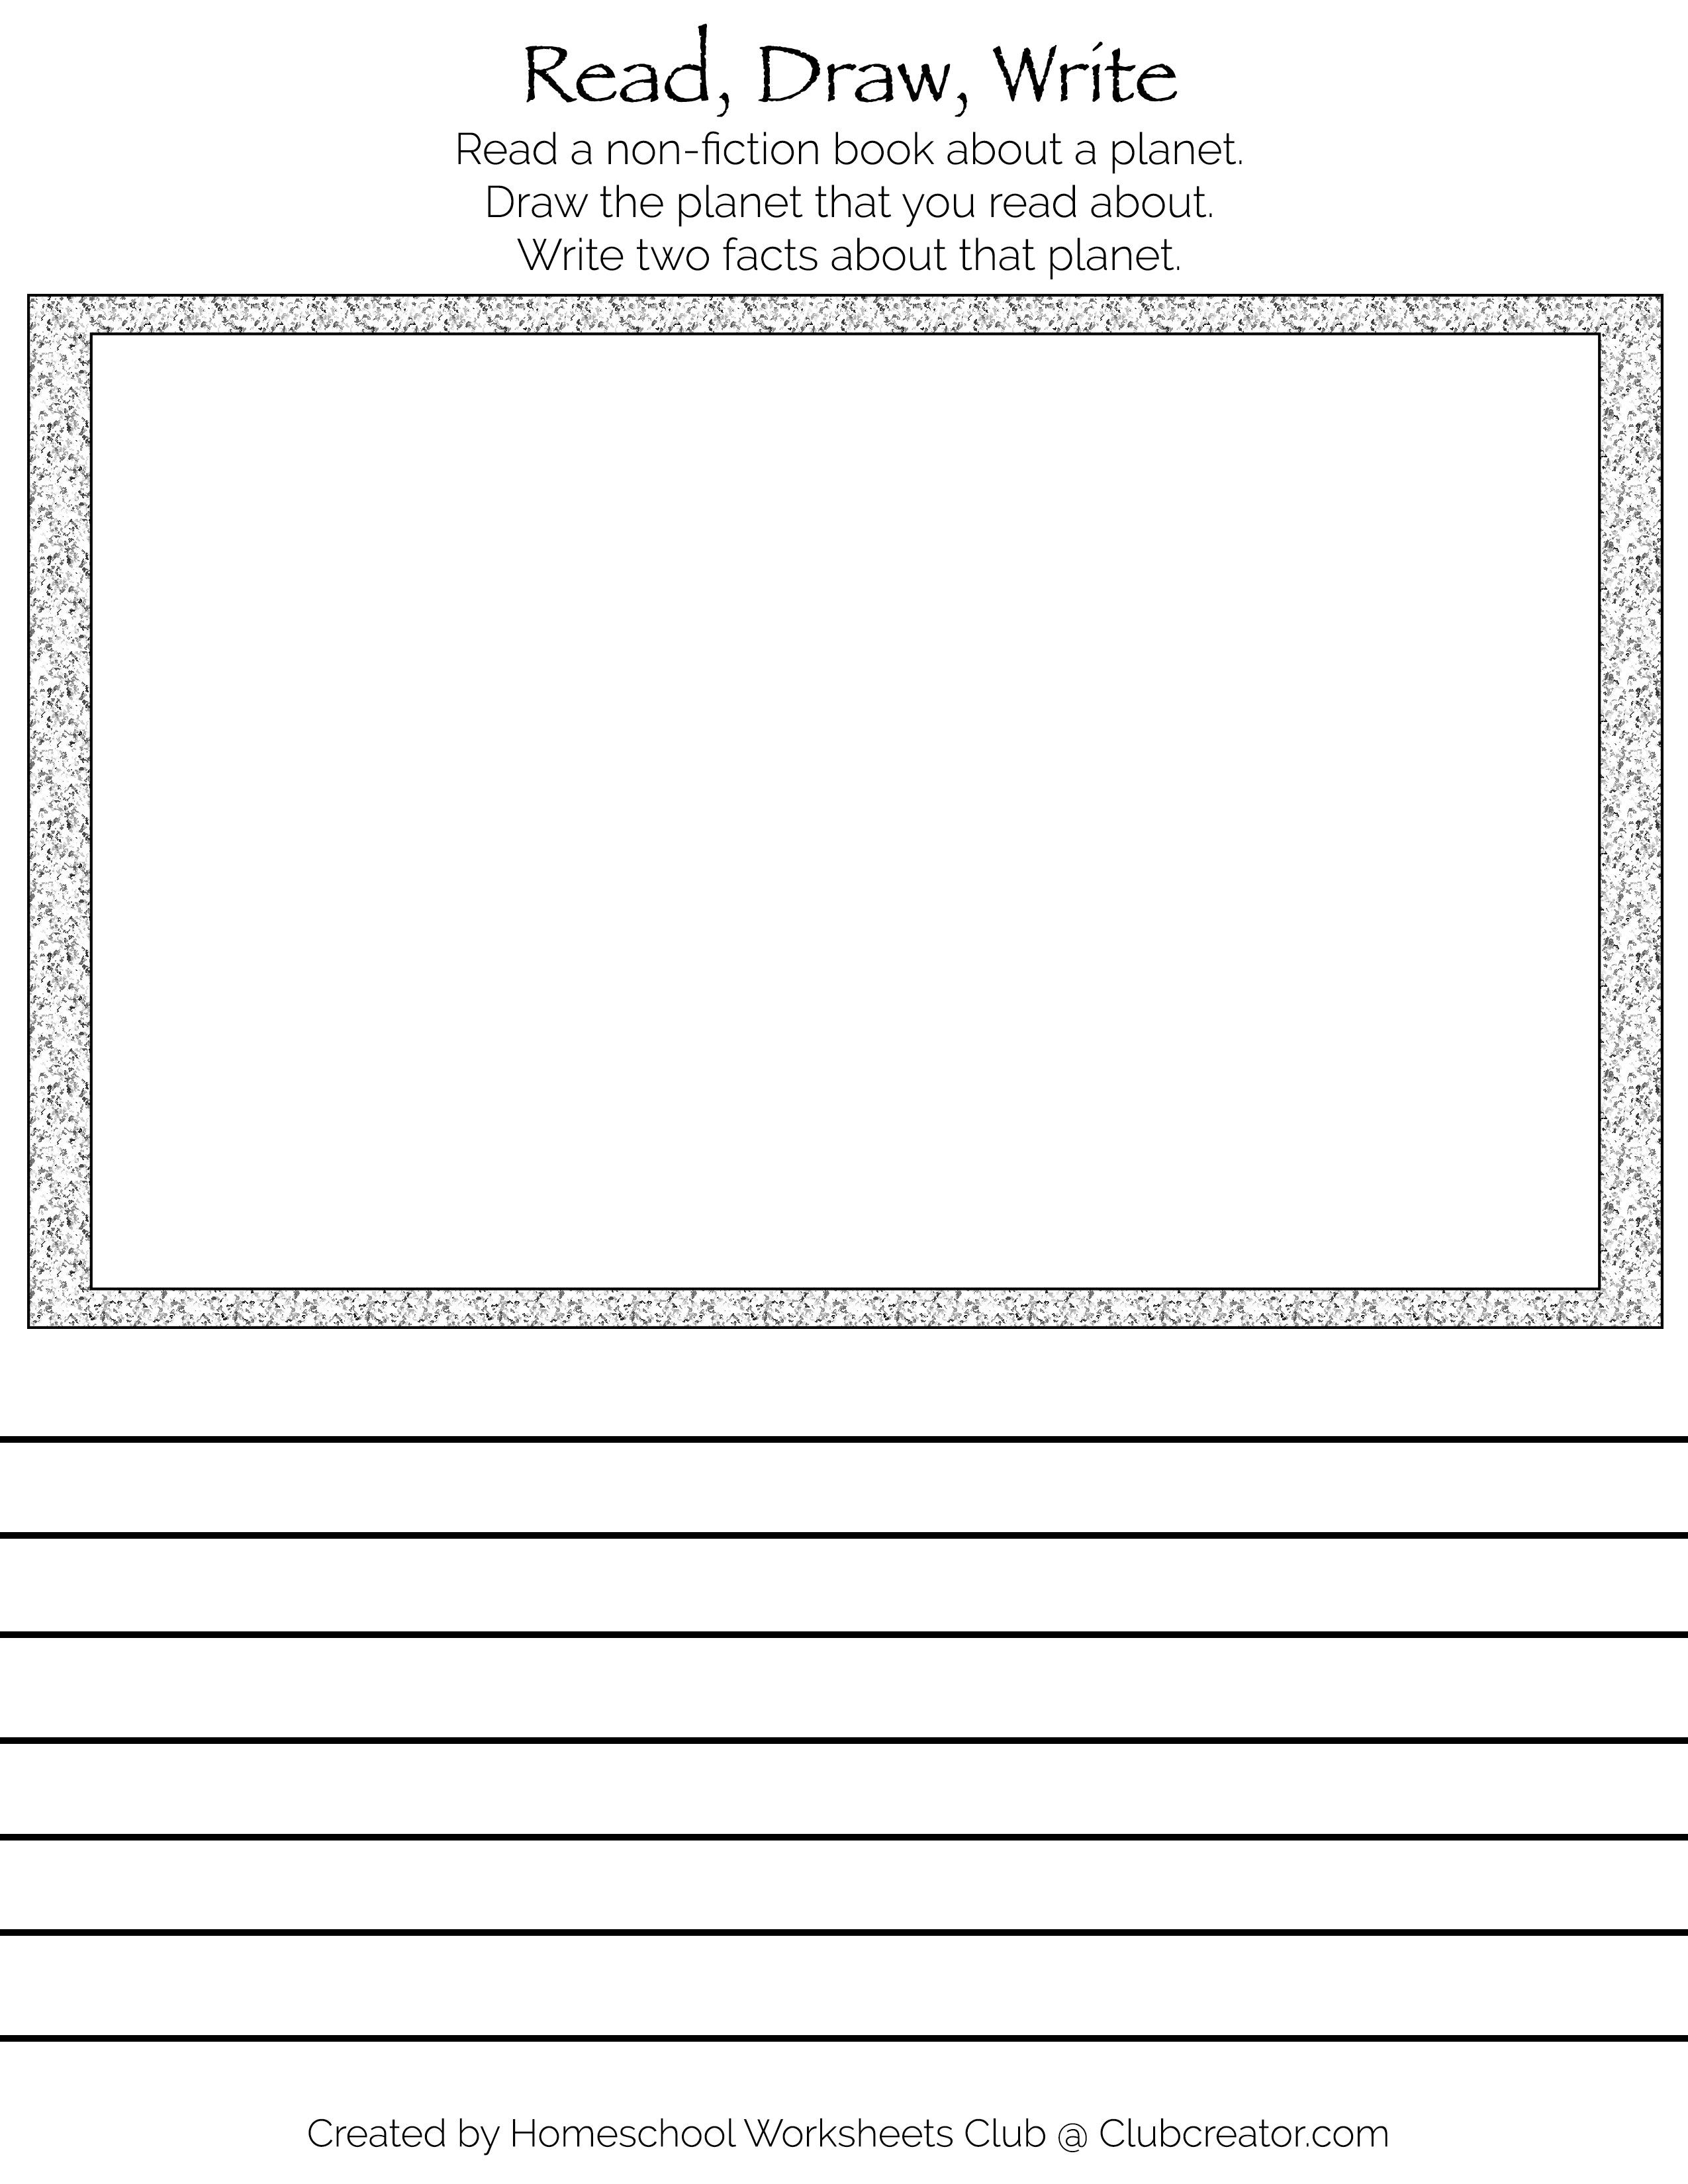 Book Response Worksheet Non Fiction Planet In